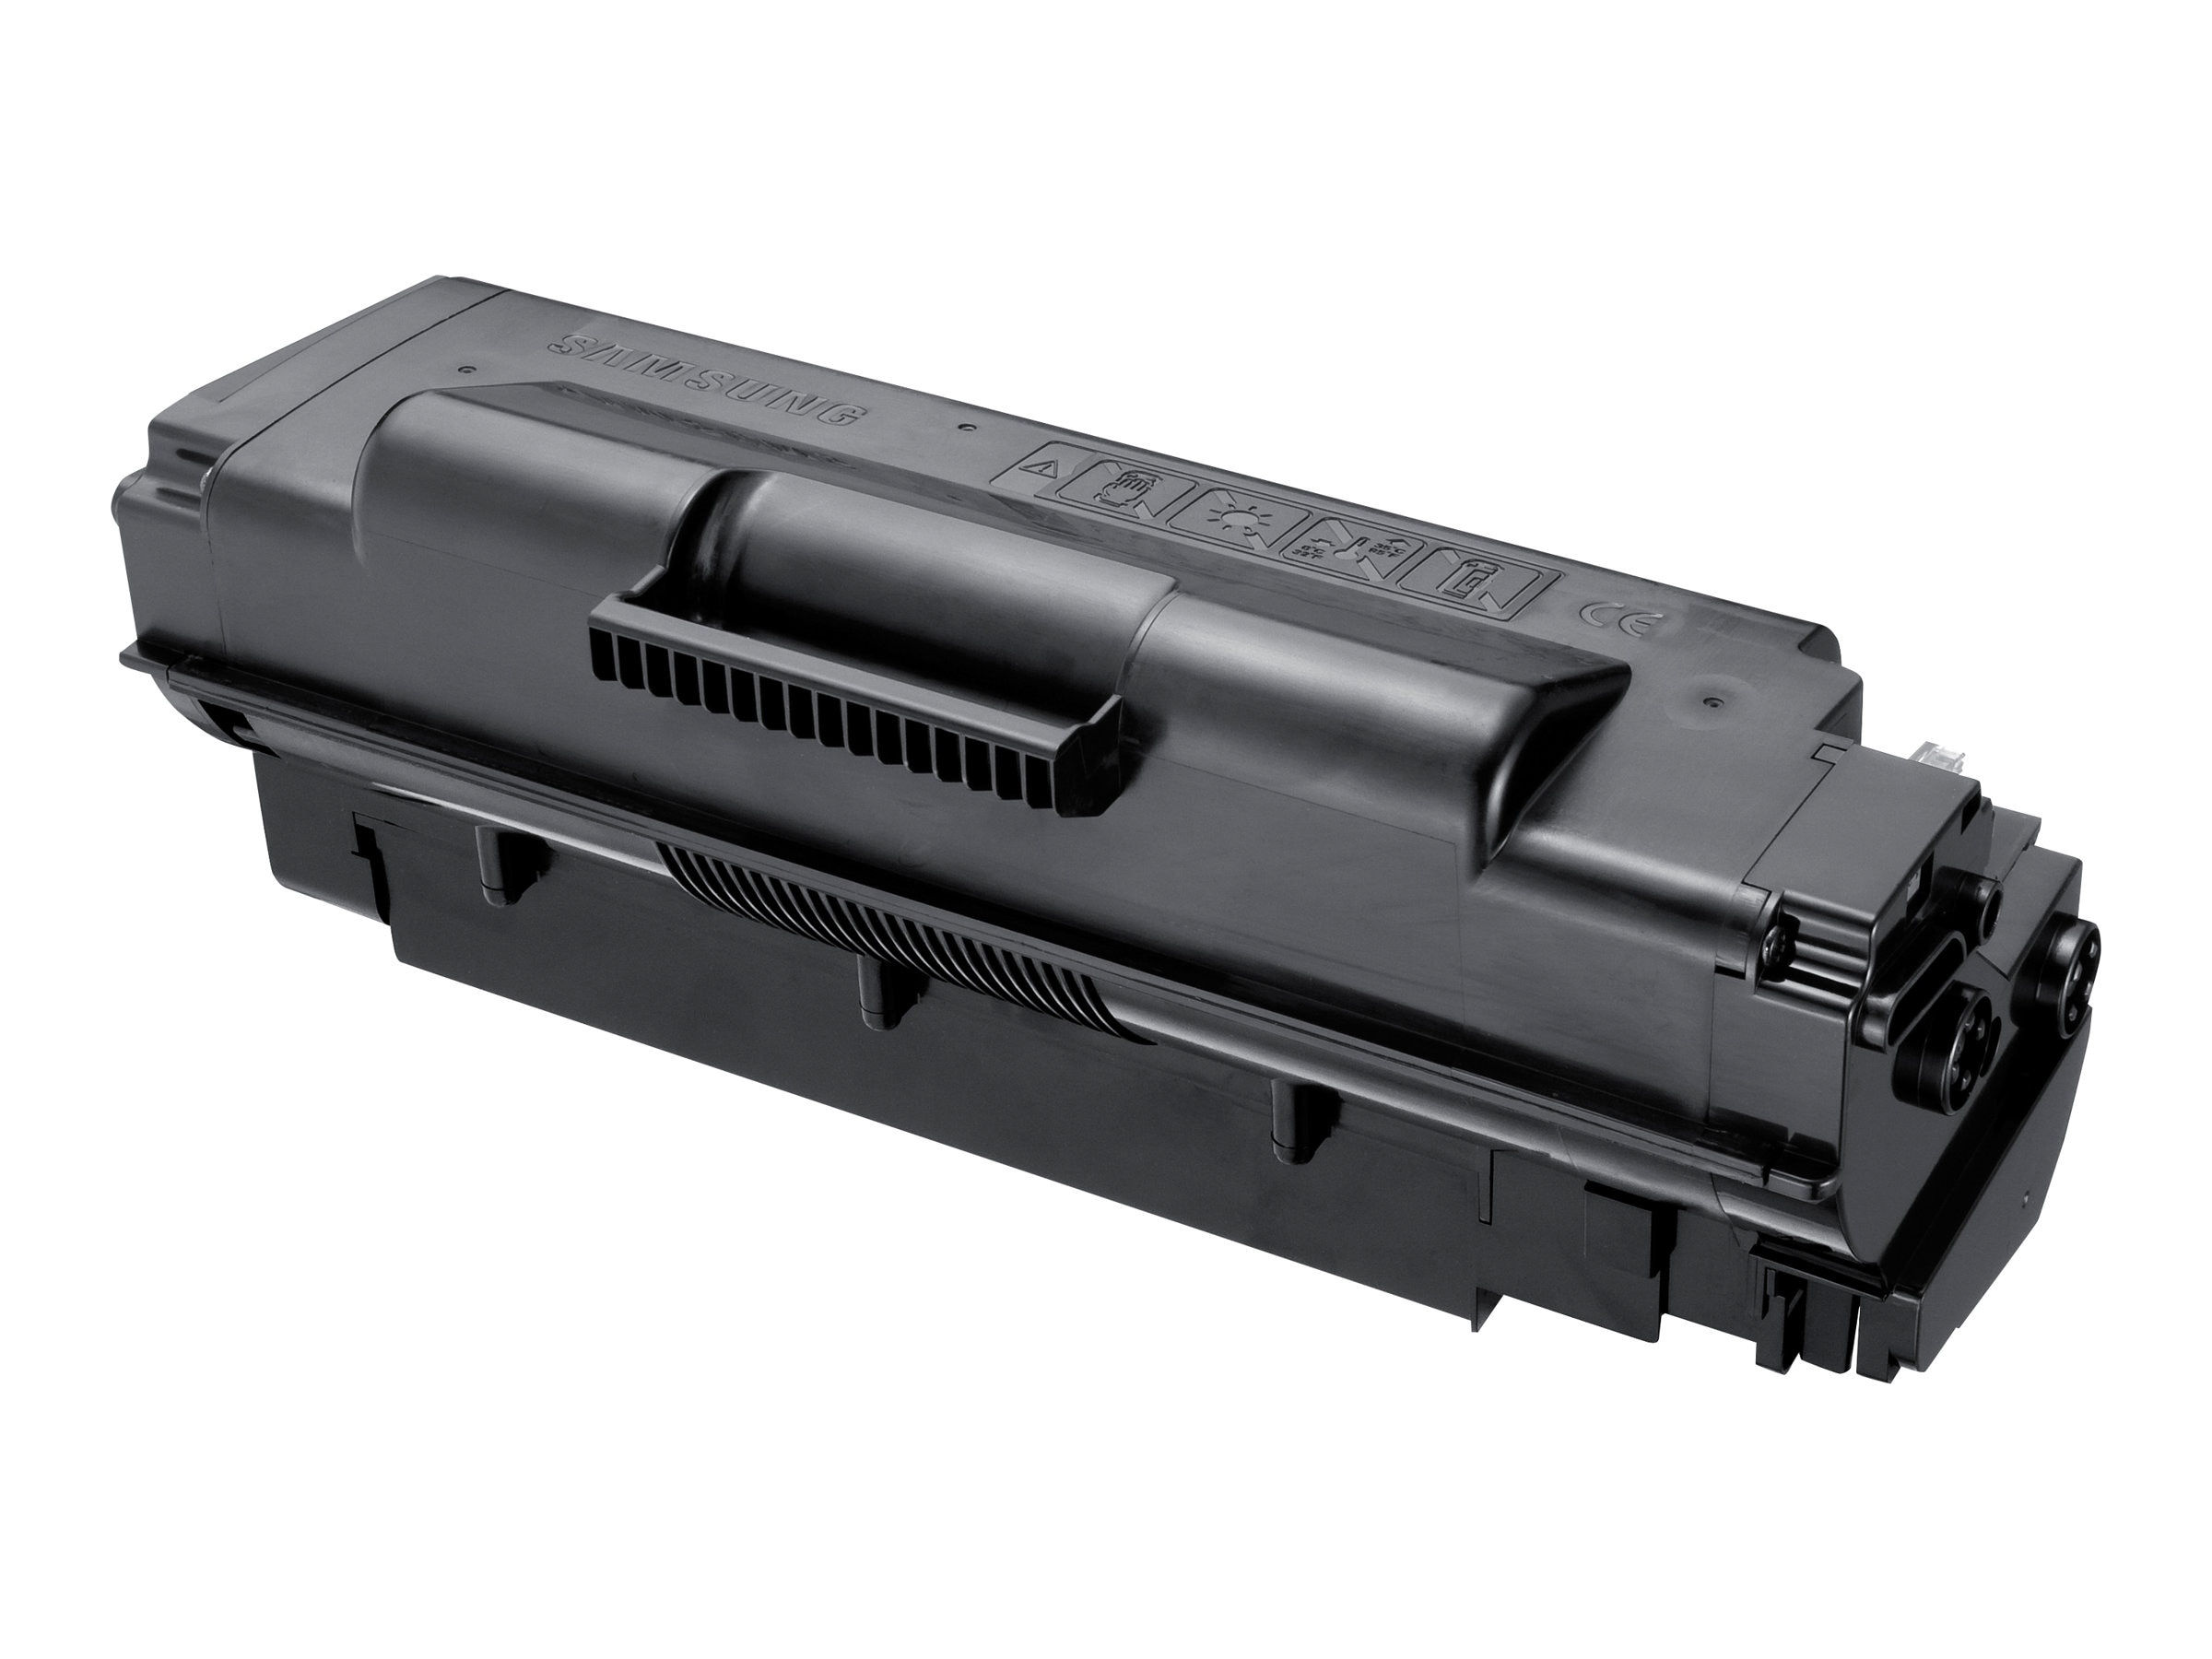 Samsung Black High Yield Toner Cartridge for ML-4512ND, ML-5012ND & ML-5017ND